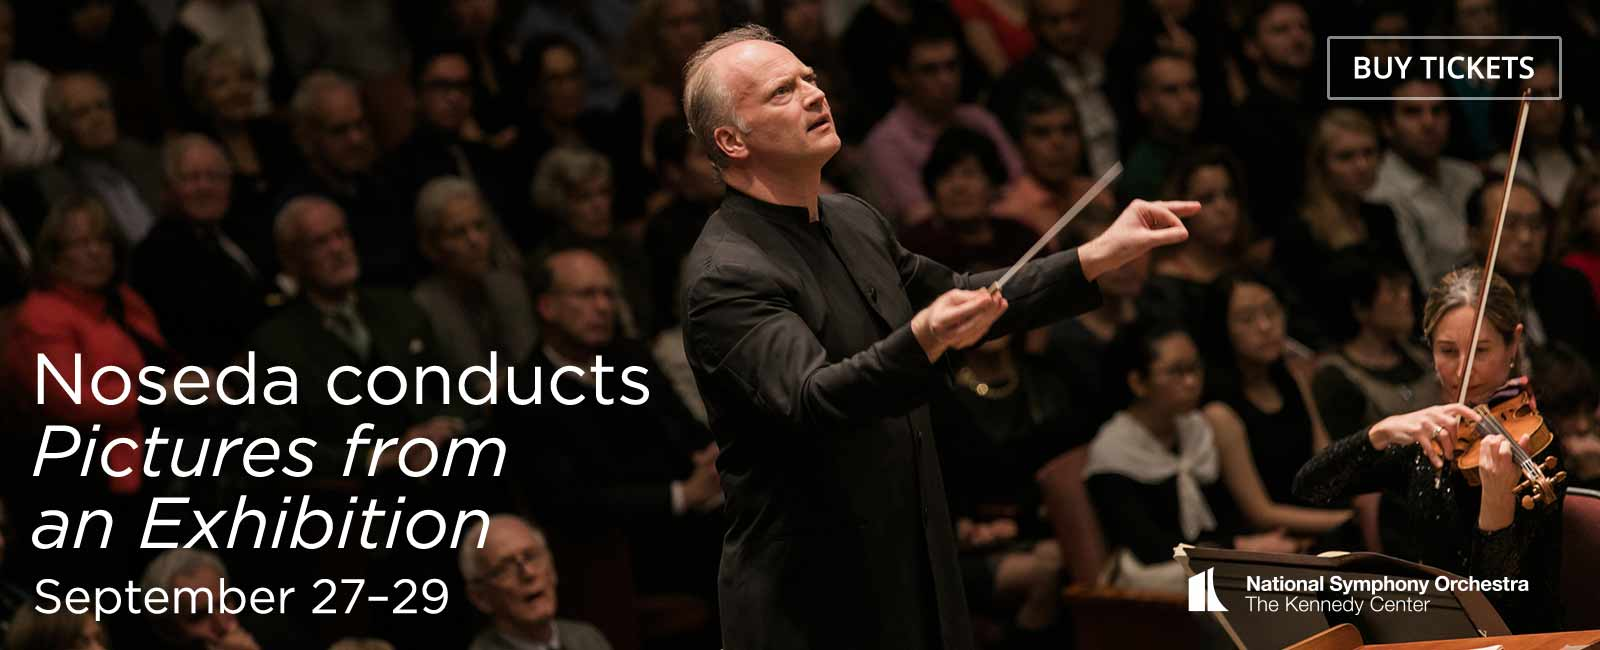 Noseda conducts Pictures from an Exhibition